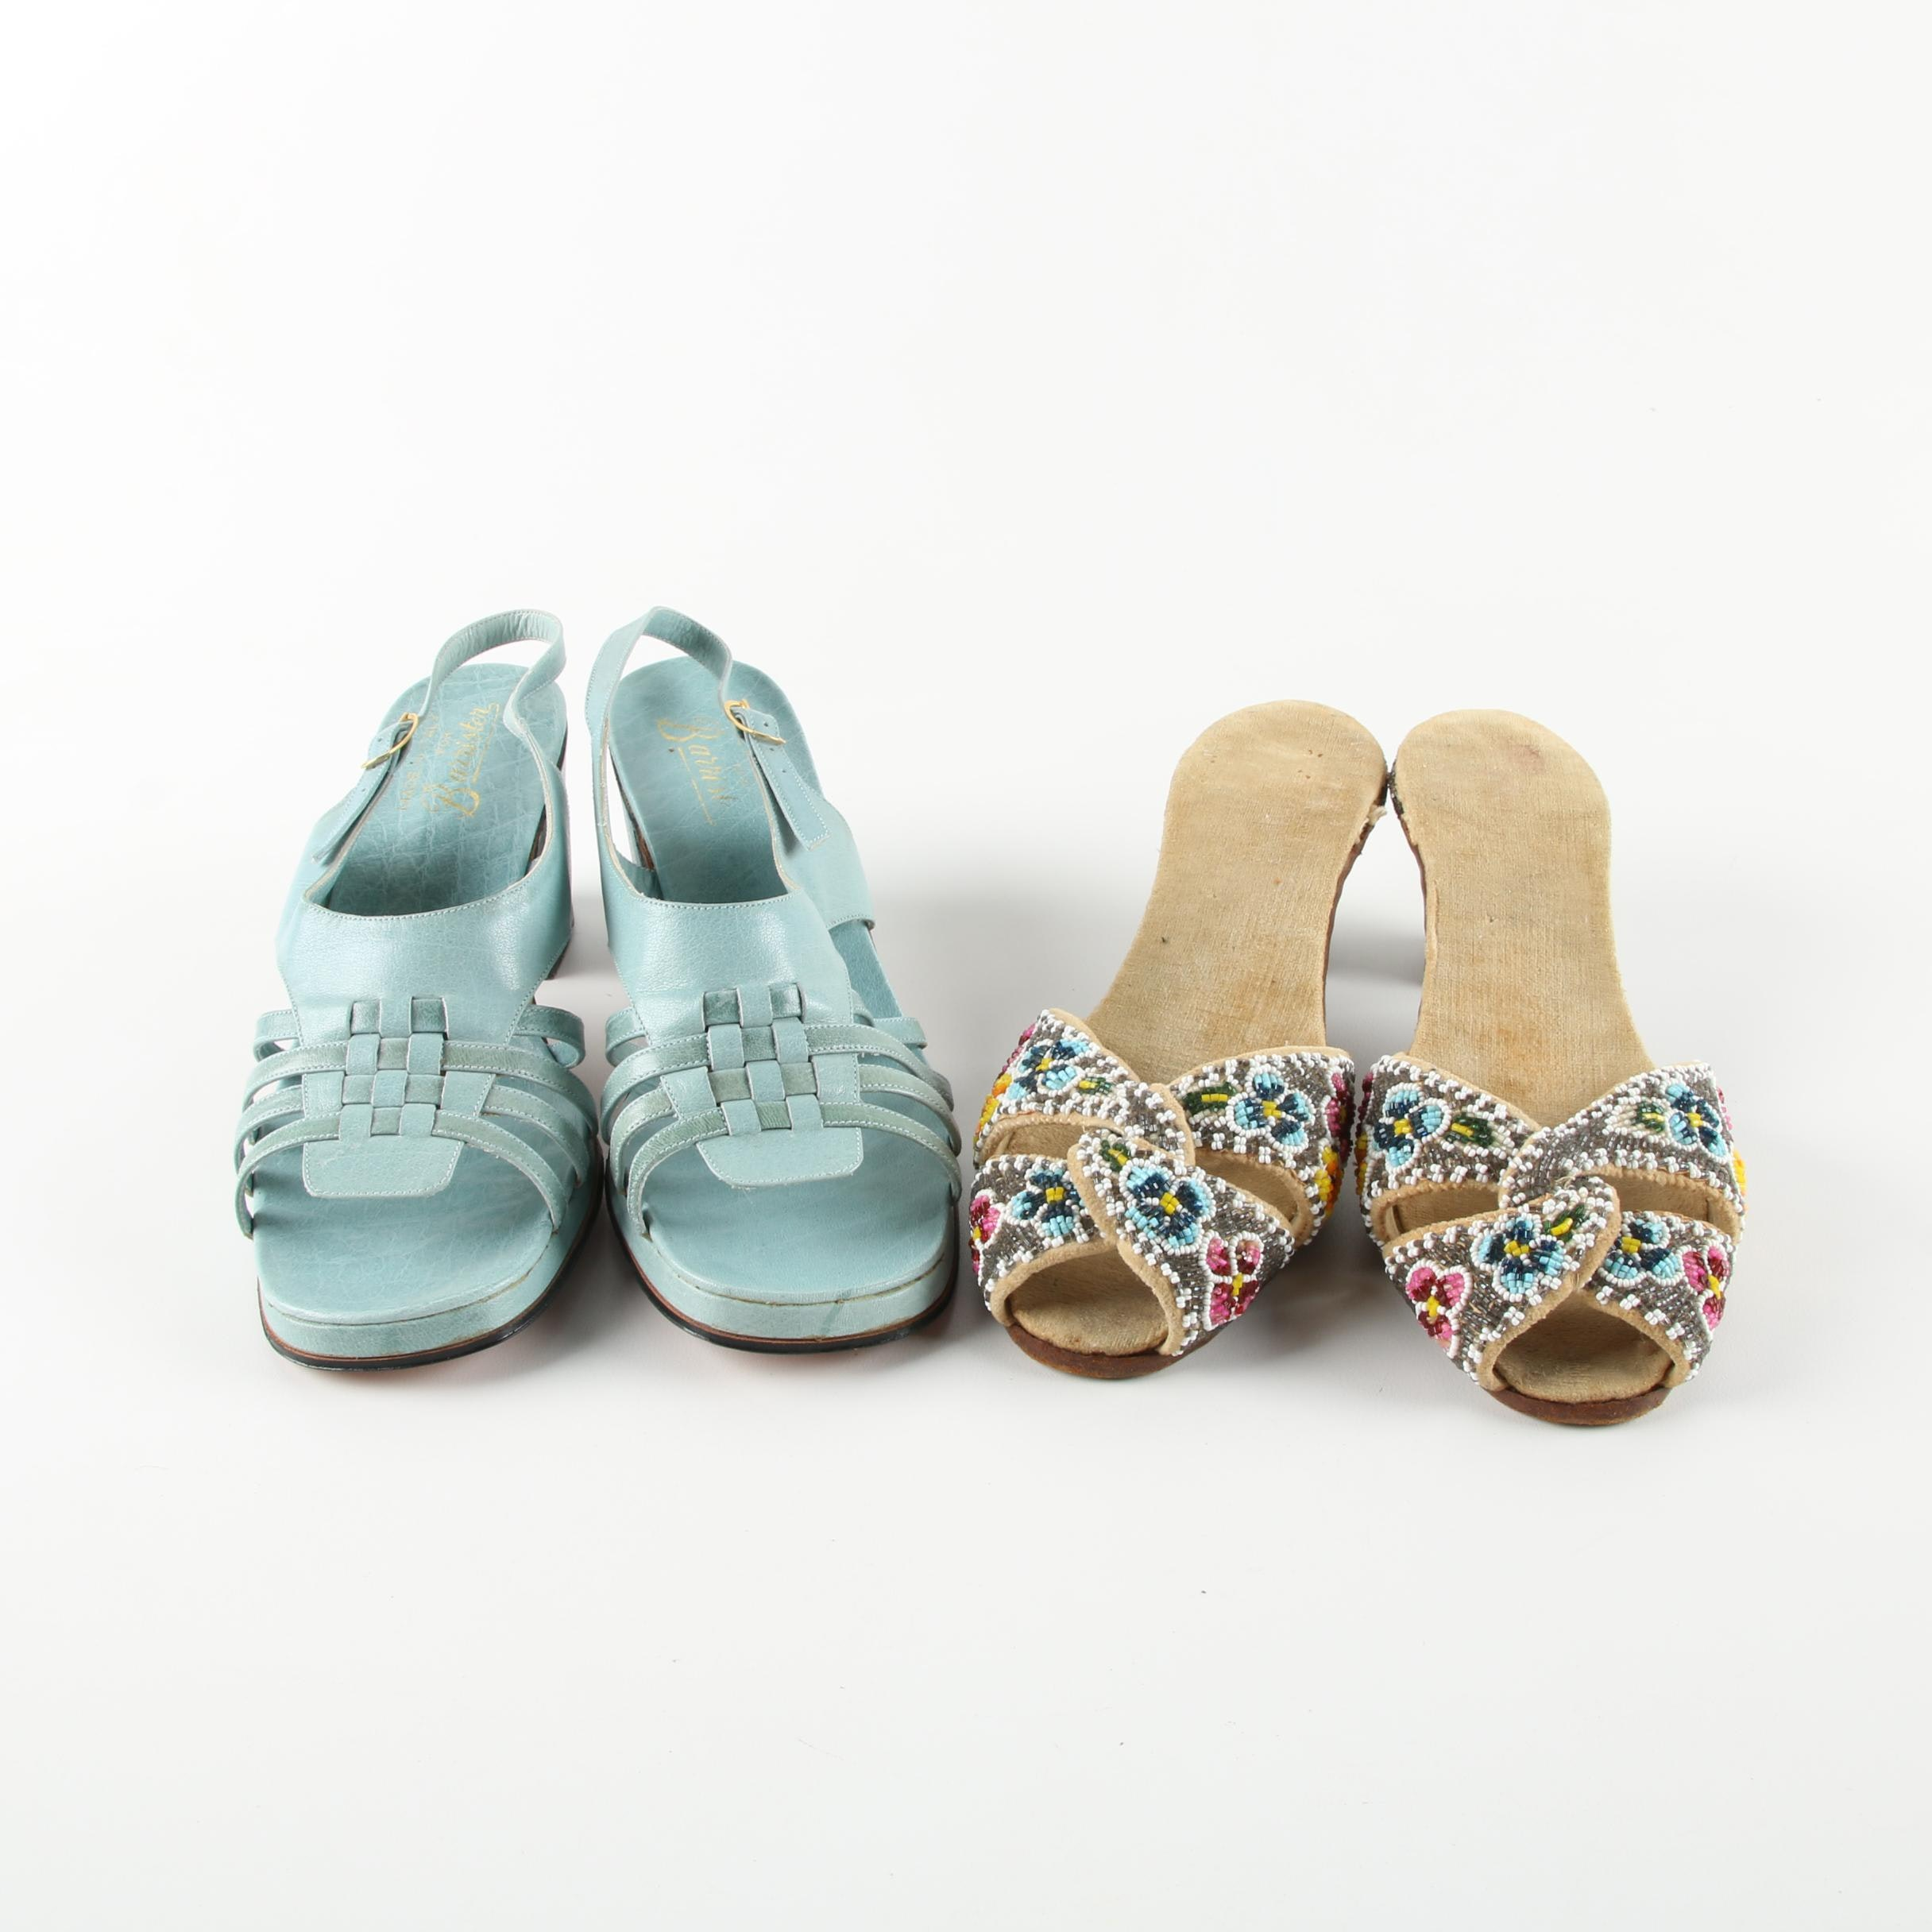 Women's Vintage Barrister Sandals and Beaded Slides